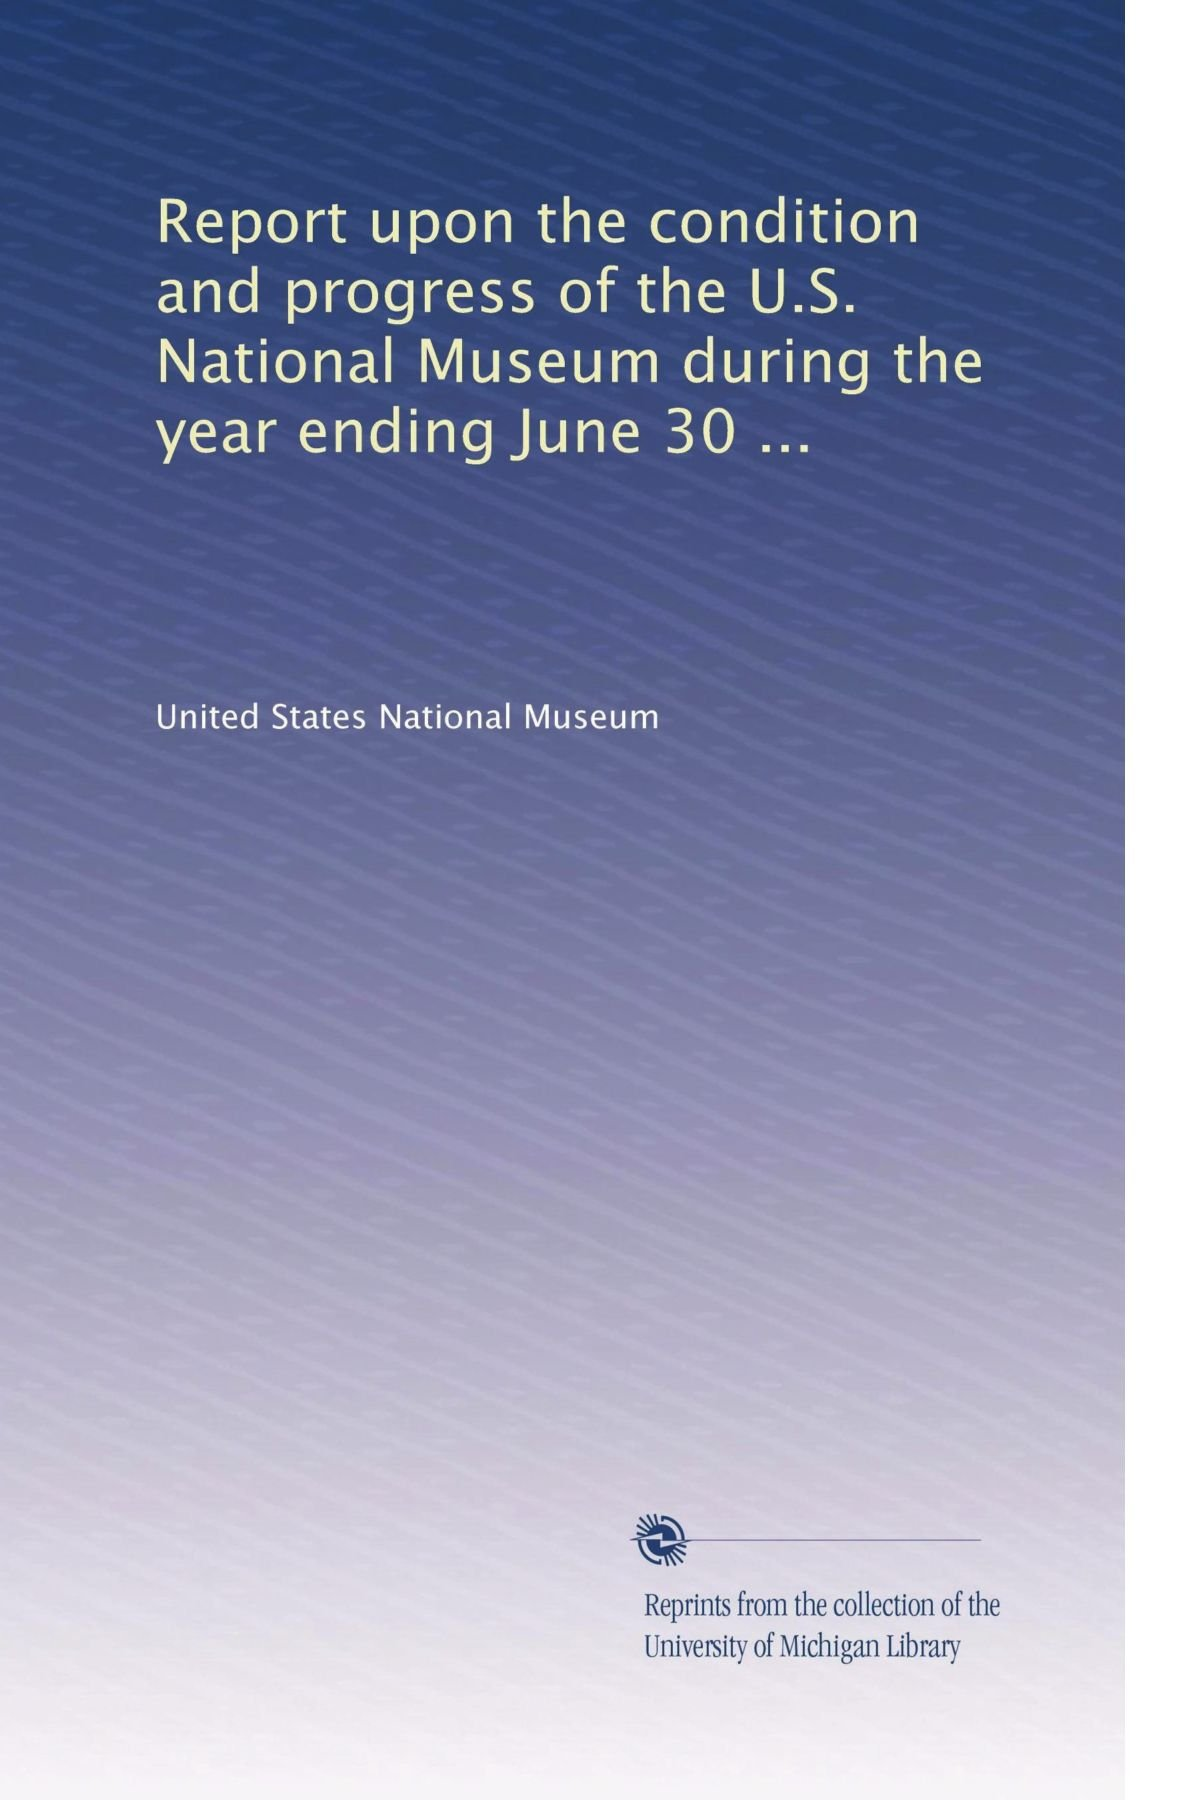 Download Report upon the condition and progress of the U.S. National Museum during the year ending June 30 ... (Volume 37) ebook